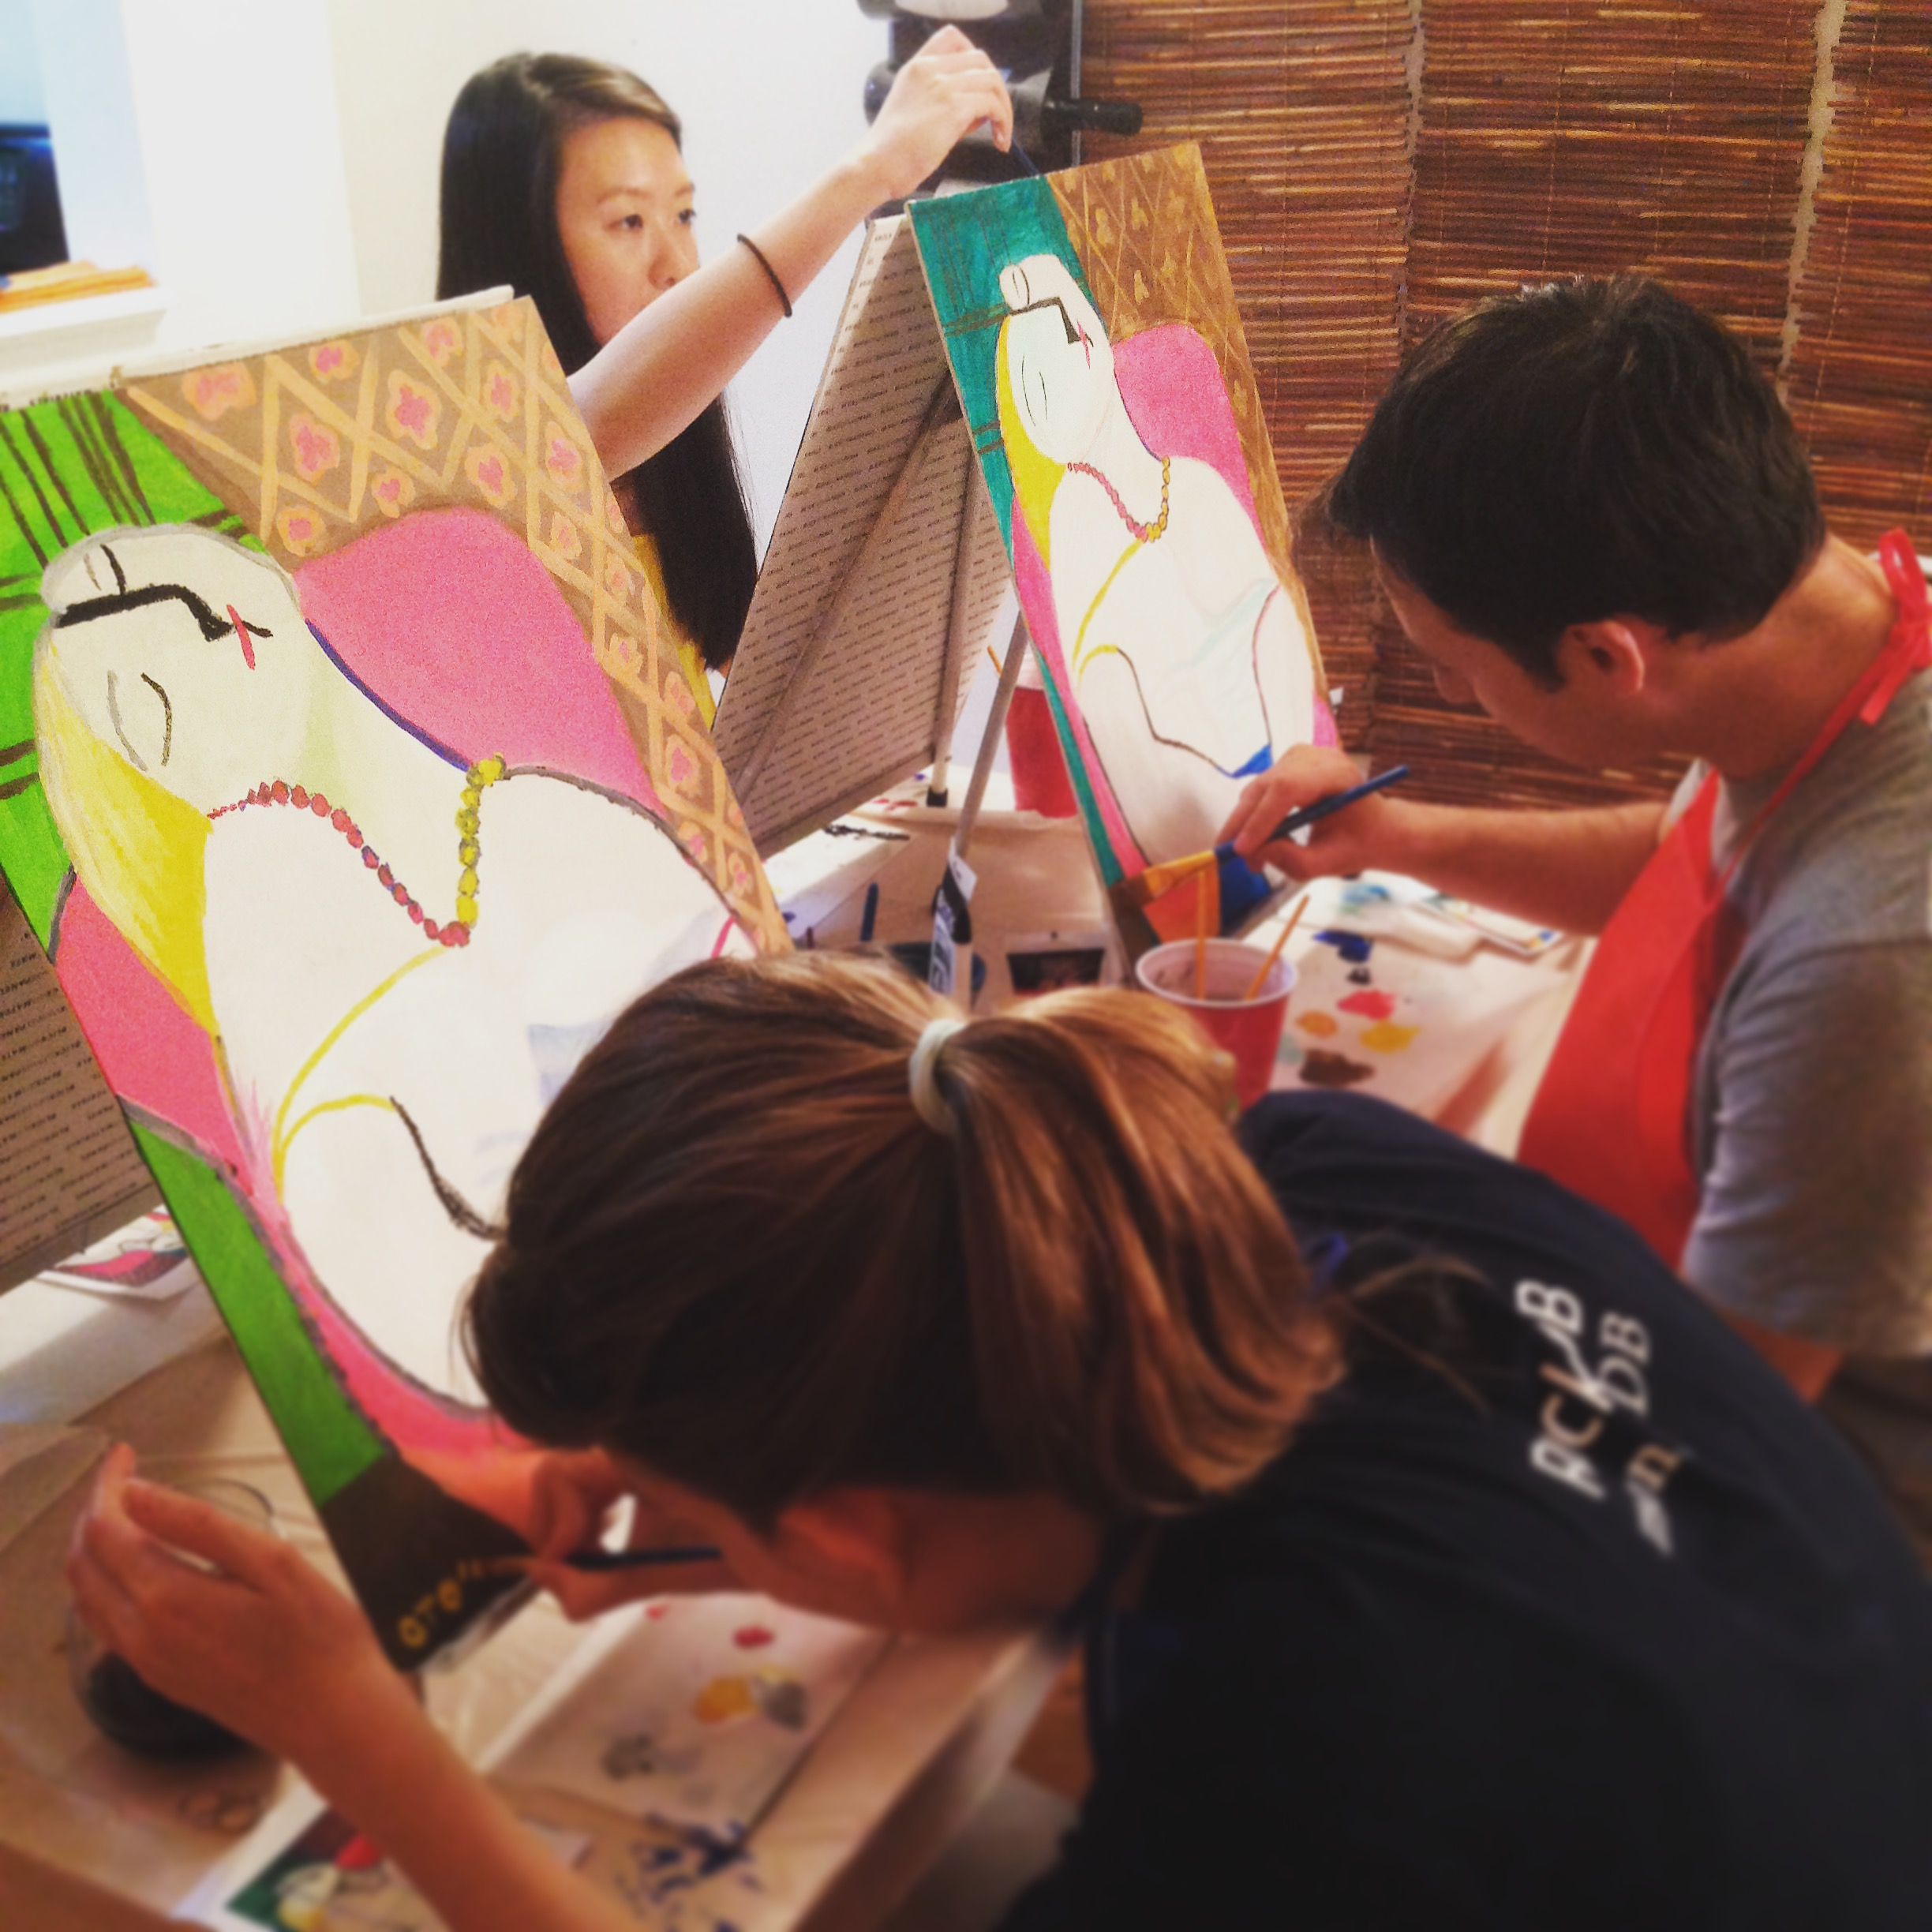 ART BOX painting experience with Picasso